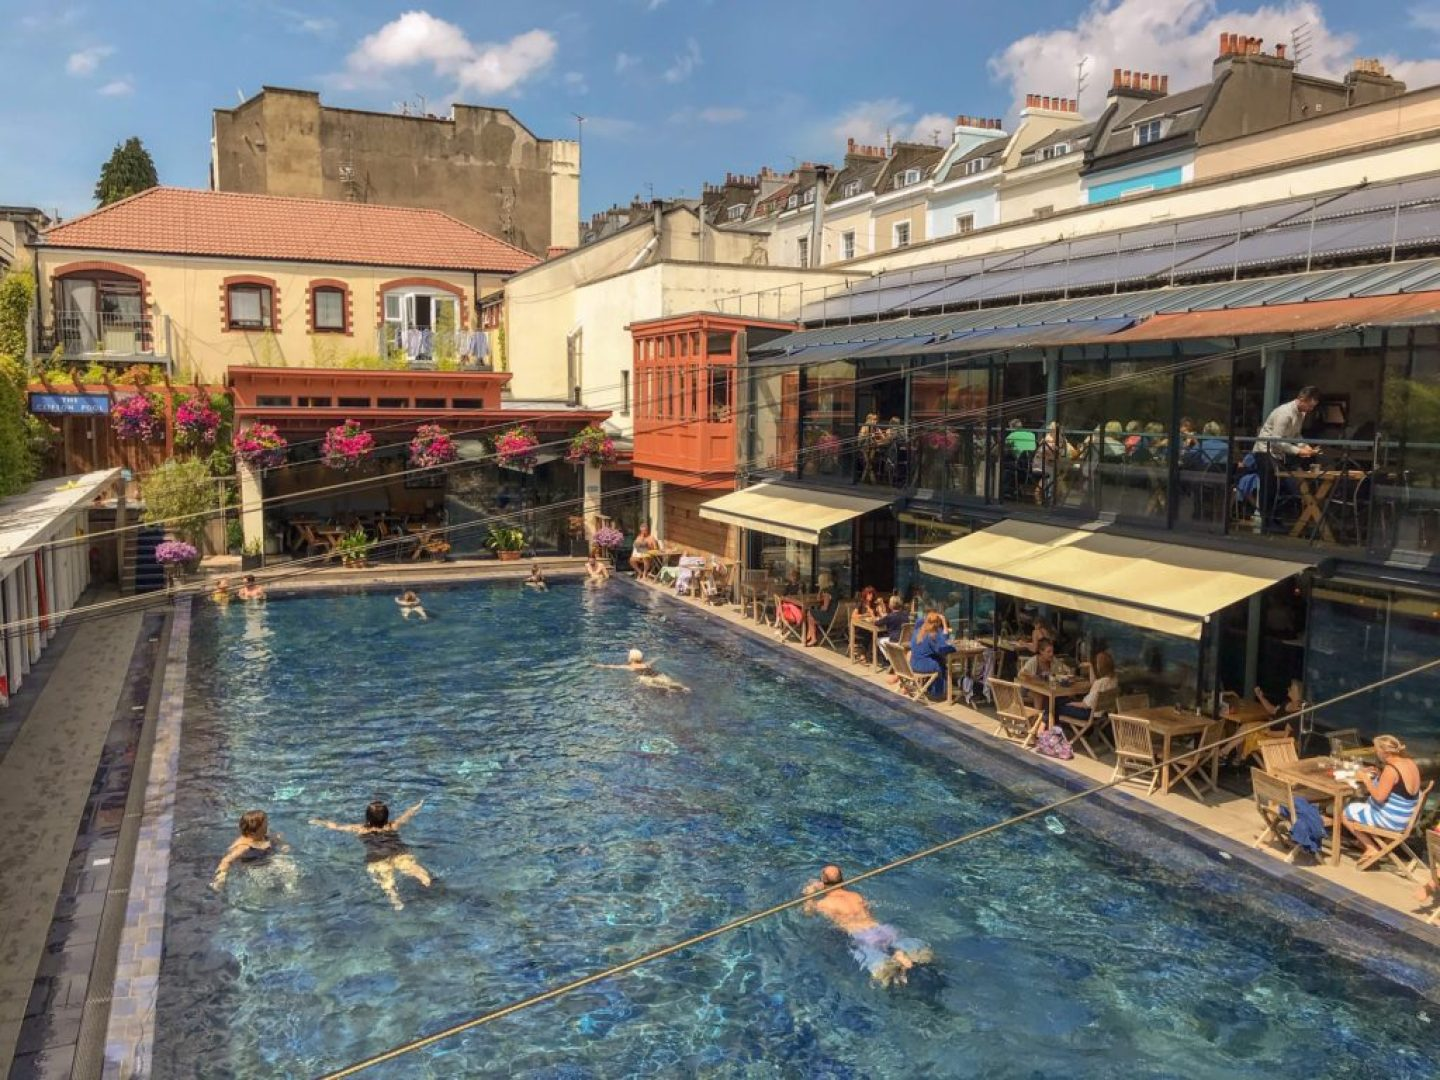 The lido Bristol, outdoor swimming pool